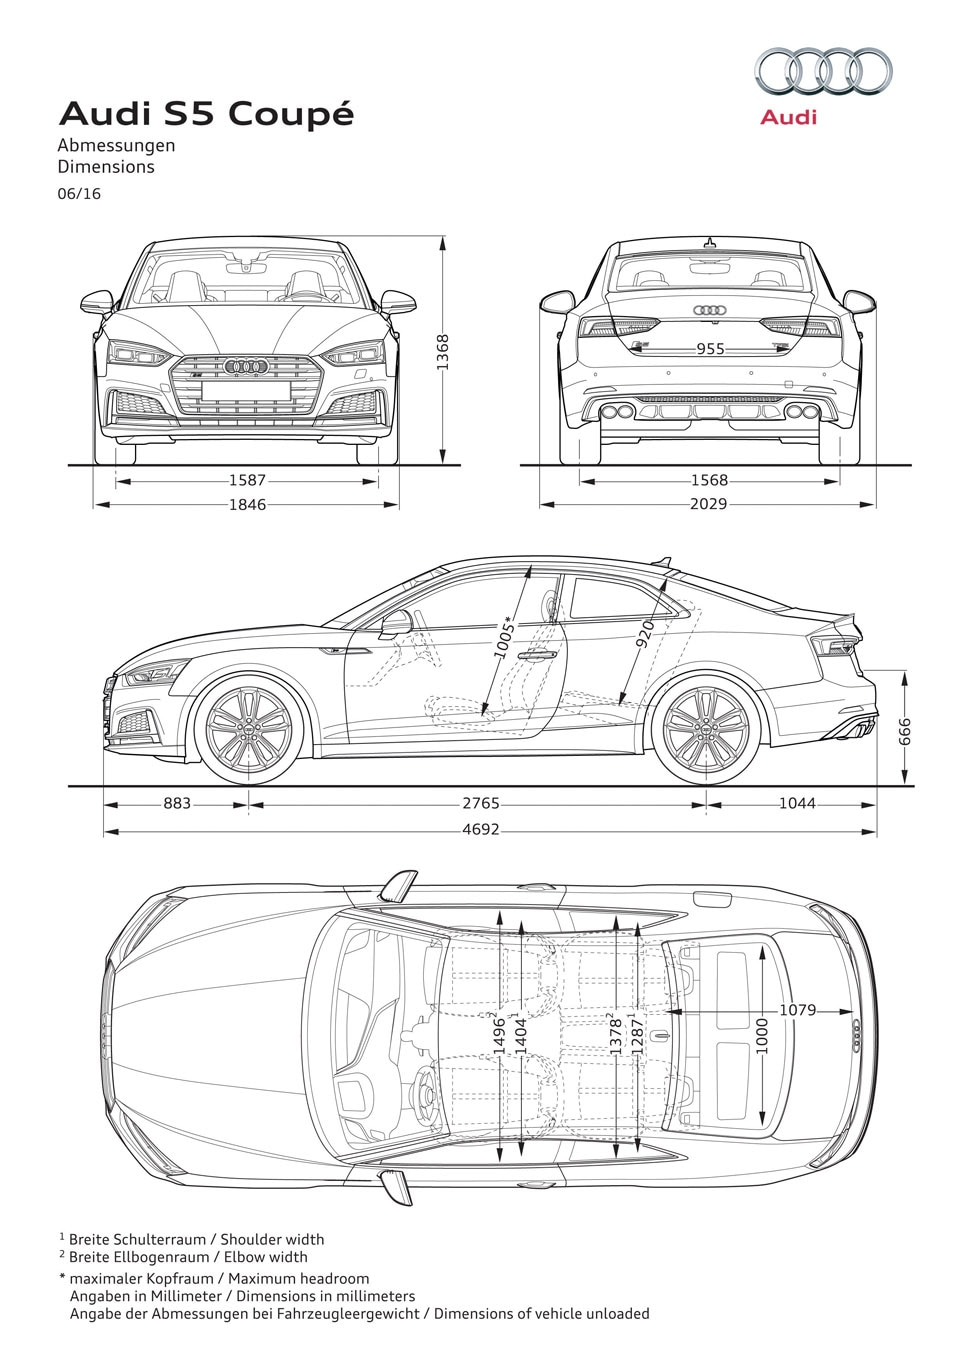 Audi A4 1 8 Engine Diagram Wiring Will Be A Thing Amb Diagrams A6 2 Another Blog About U2022 Rh Ok2 Infoservice Ru 2009 2012